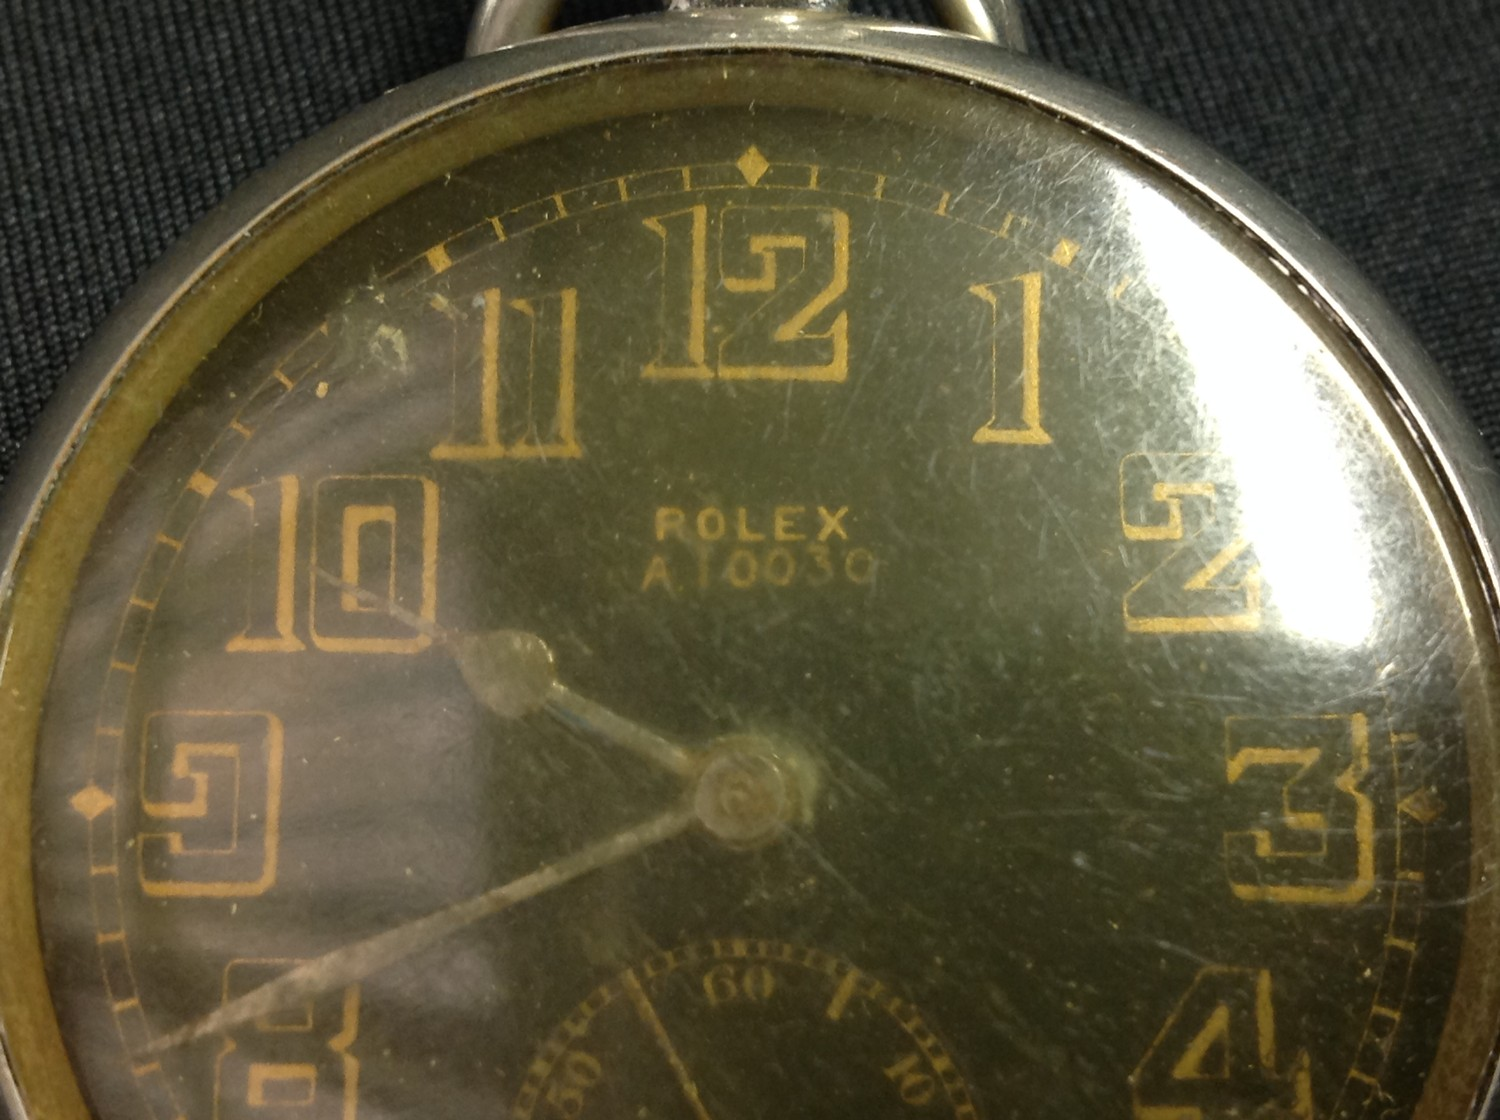 WW2 'Military' style private purchase Rolex A10030 open faced pocket watch, black enamel dial gold - Image 9 of 10